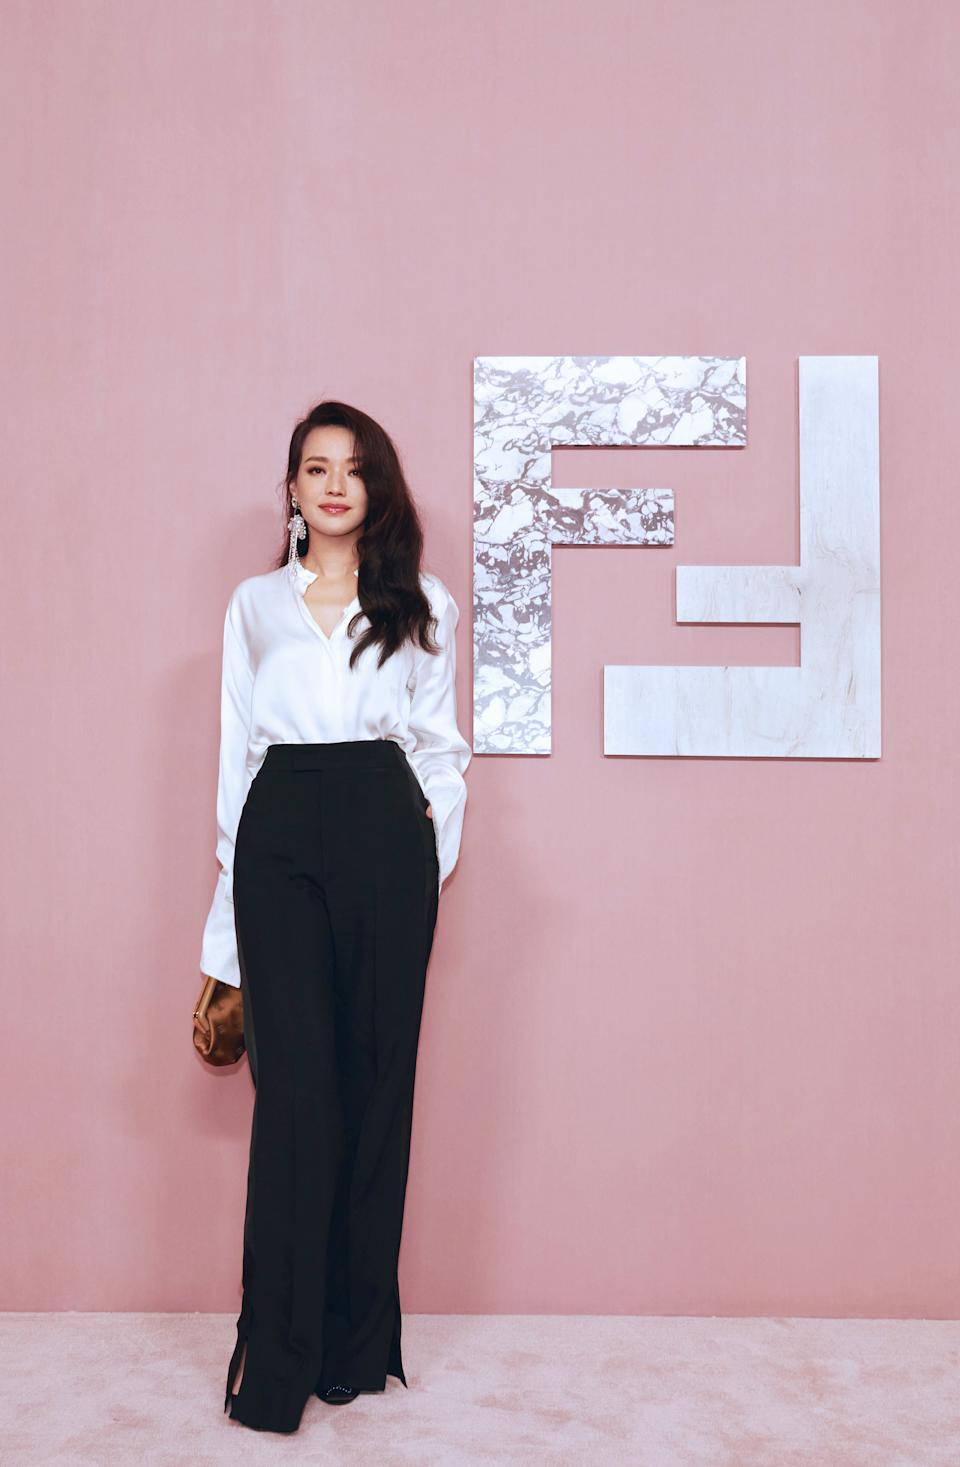 Actress Shu Qi at Fendi Shanghai show. (PHOTO: Fendi)